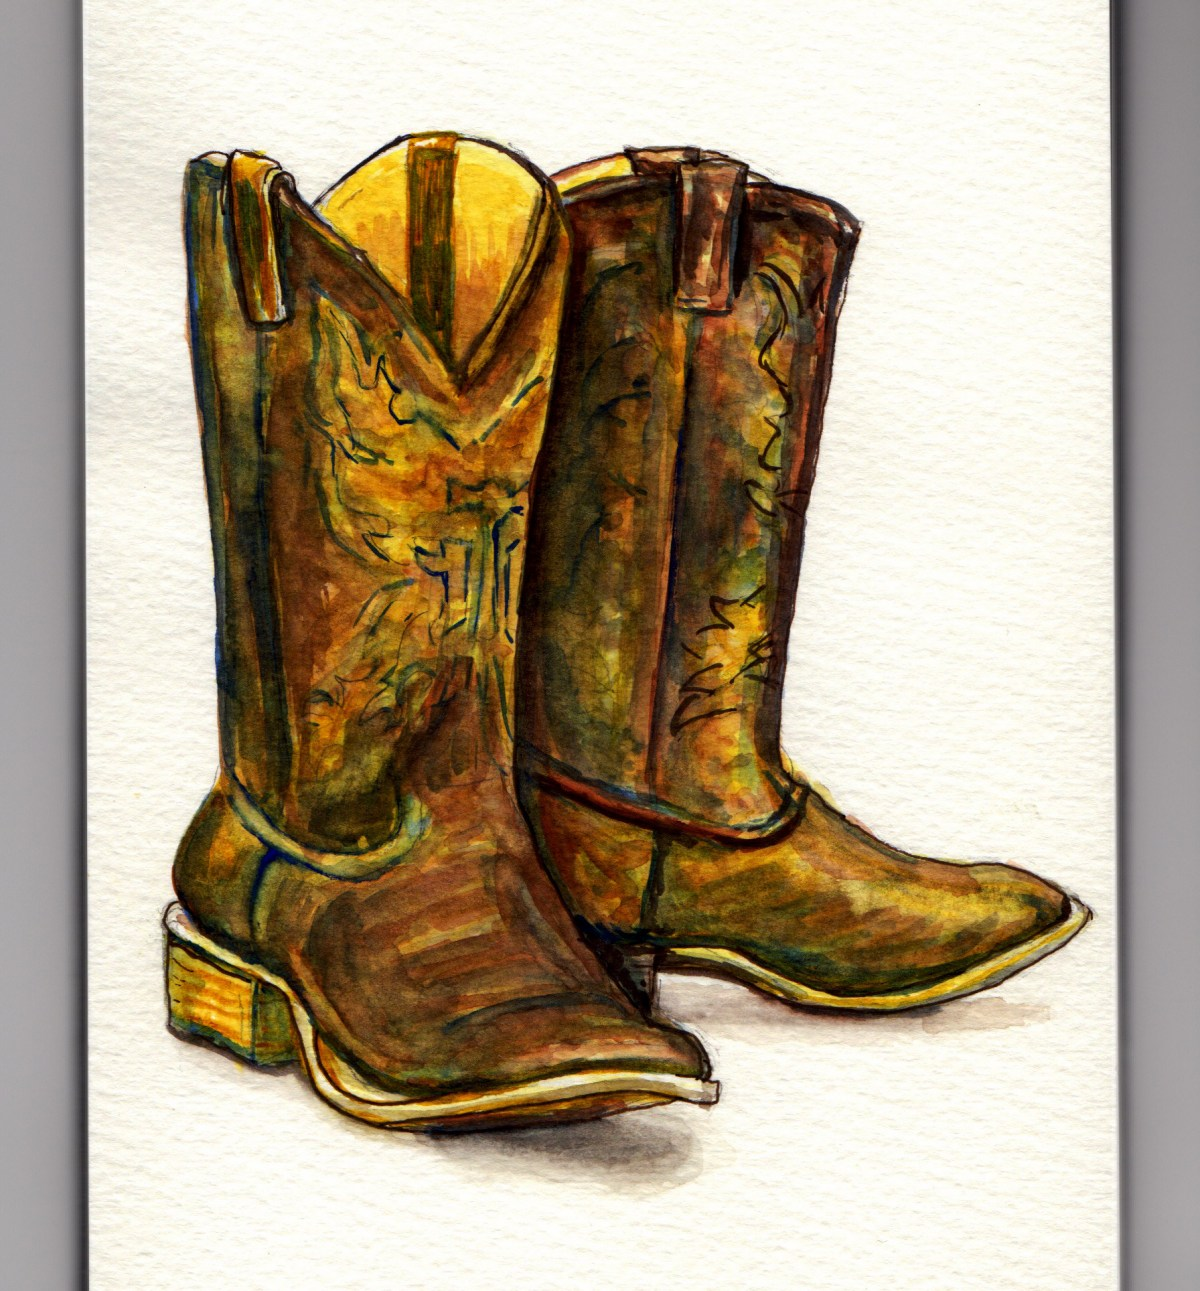 Dancing Boots by Charlie O'Shields